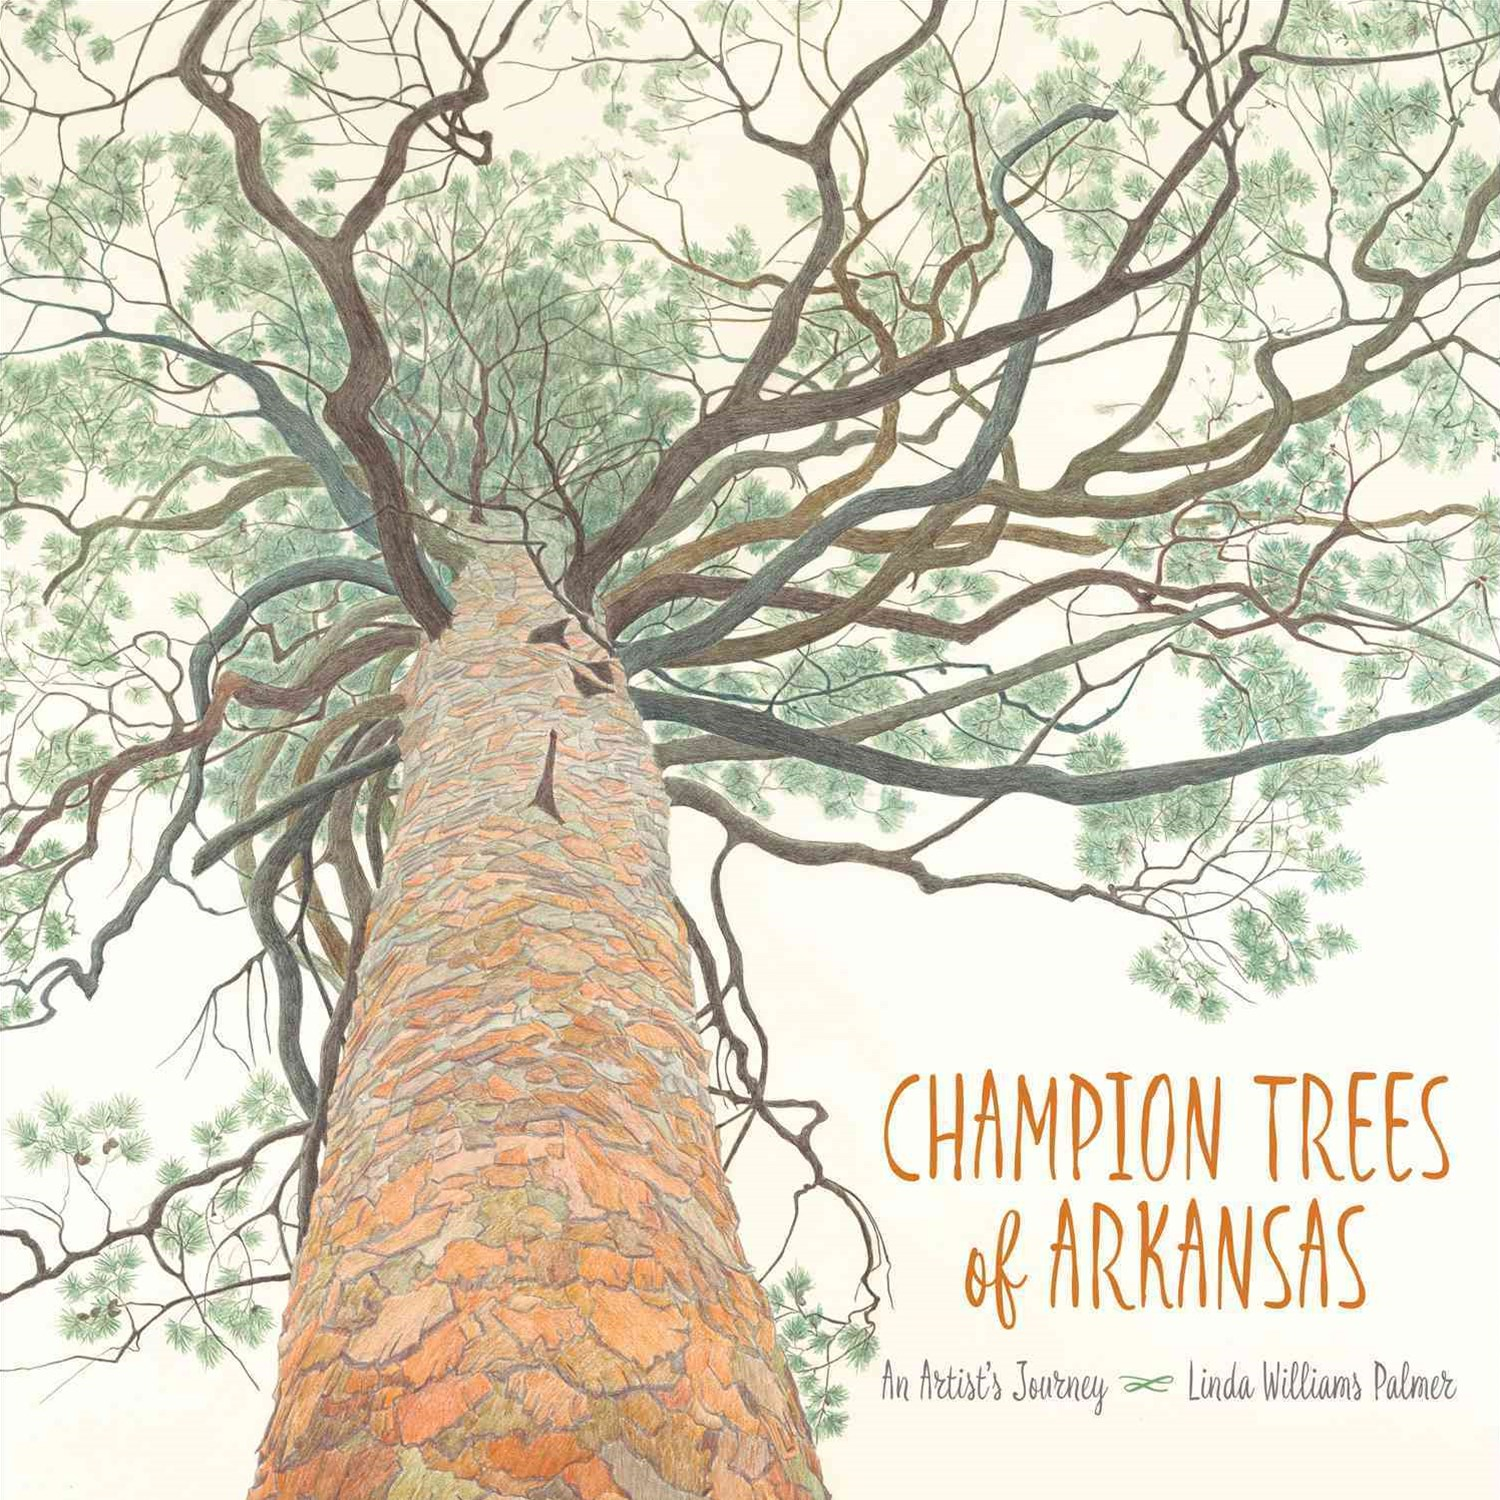 Champion Trees of Arkansas